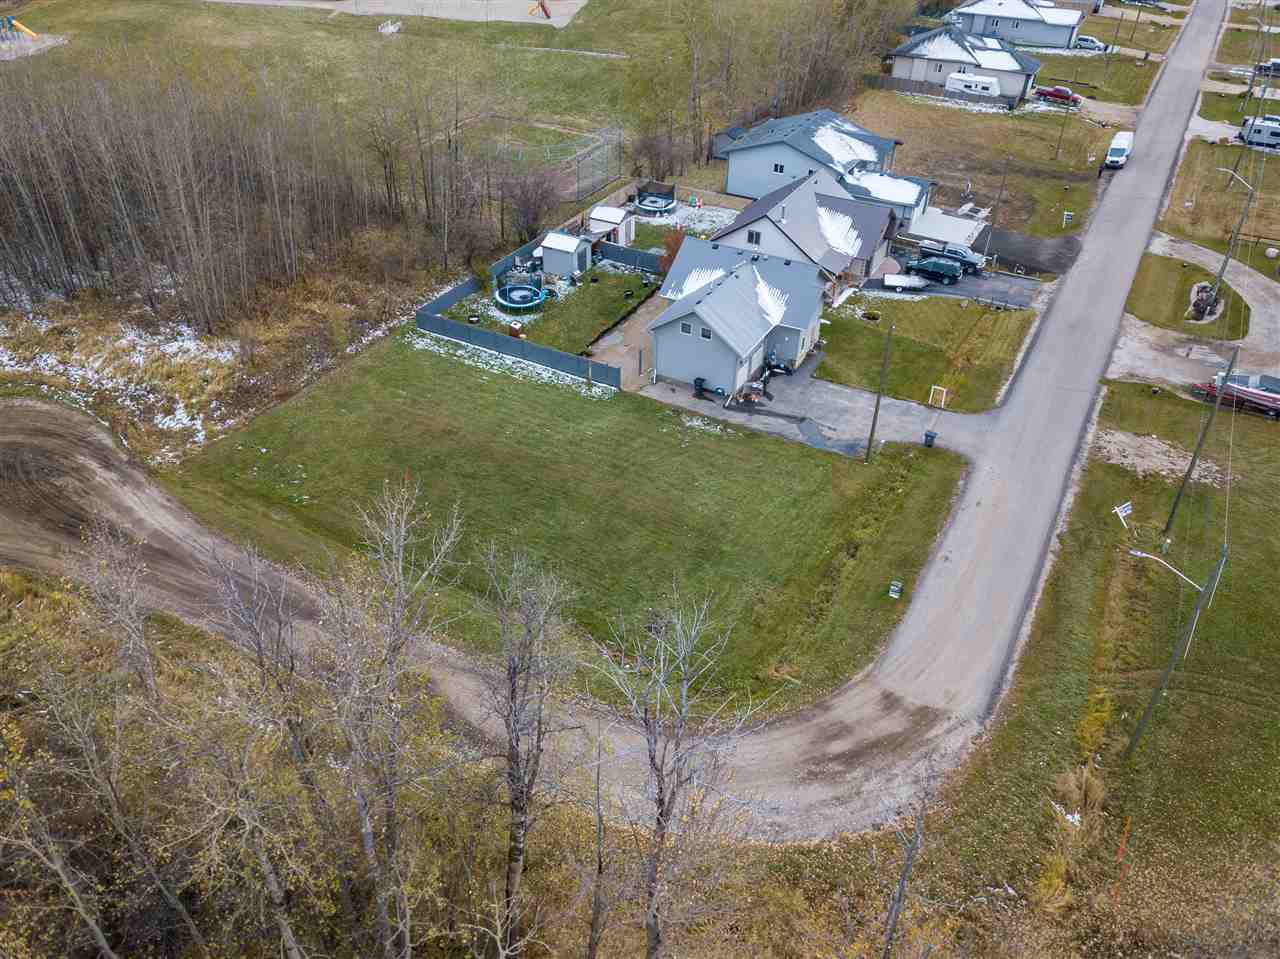 Enjoy this large corner lot in the newer community of Grasmere Glens in Alberta Beach. 5 minute walk to the school, lake, or golf course! The municipal sewer and Natural gas, power, telephone and cable at the roadway. A short drive from Stony Plain or 40 minutes west of Edmonton and you will be at your lake home! Conveniently located at the school and golf course this end lot is surrounded by trees.